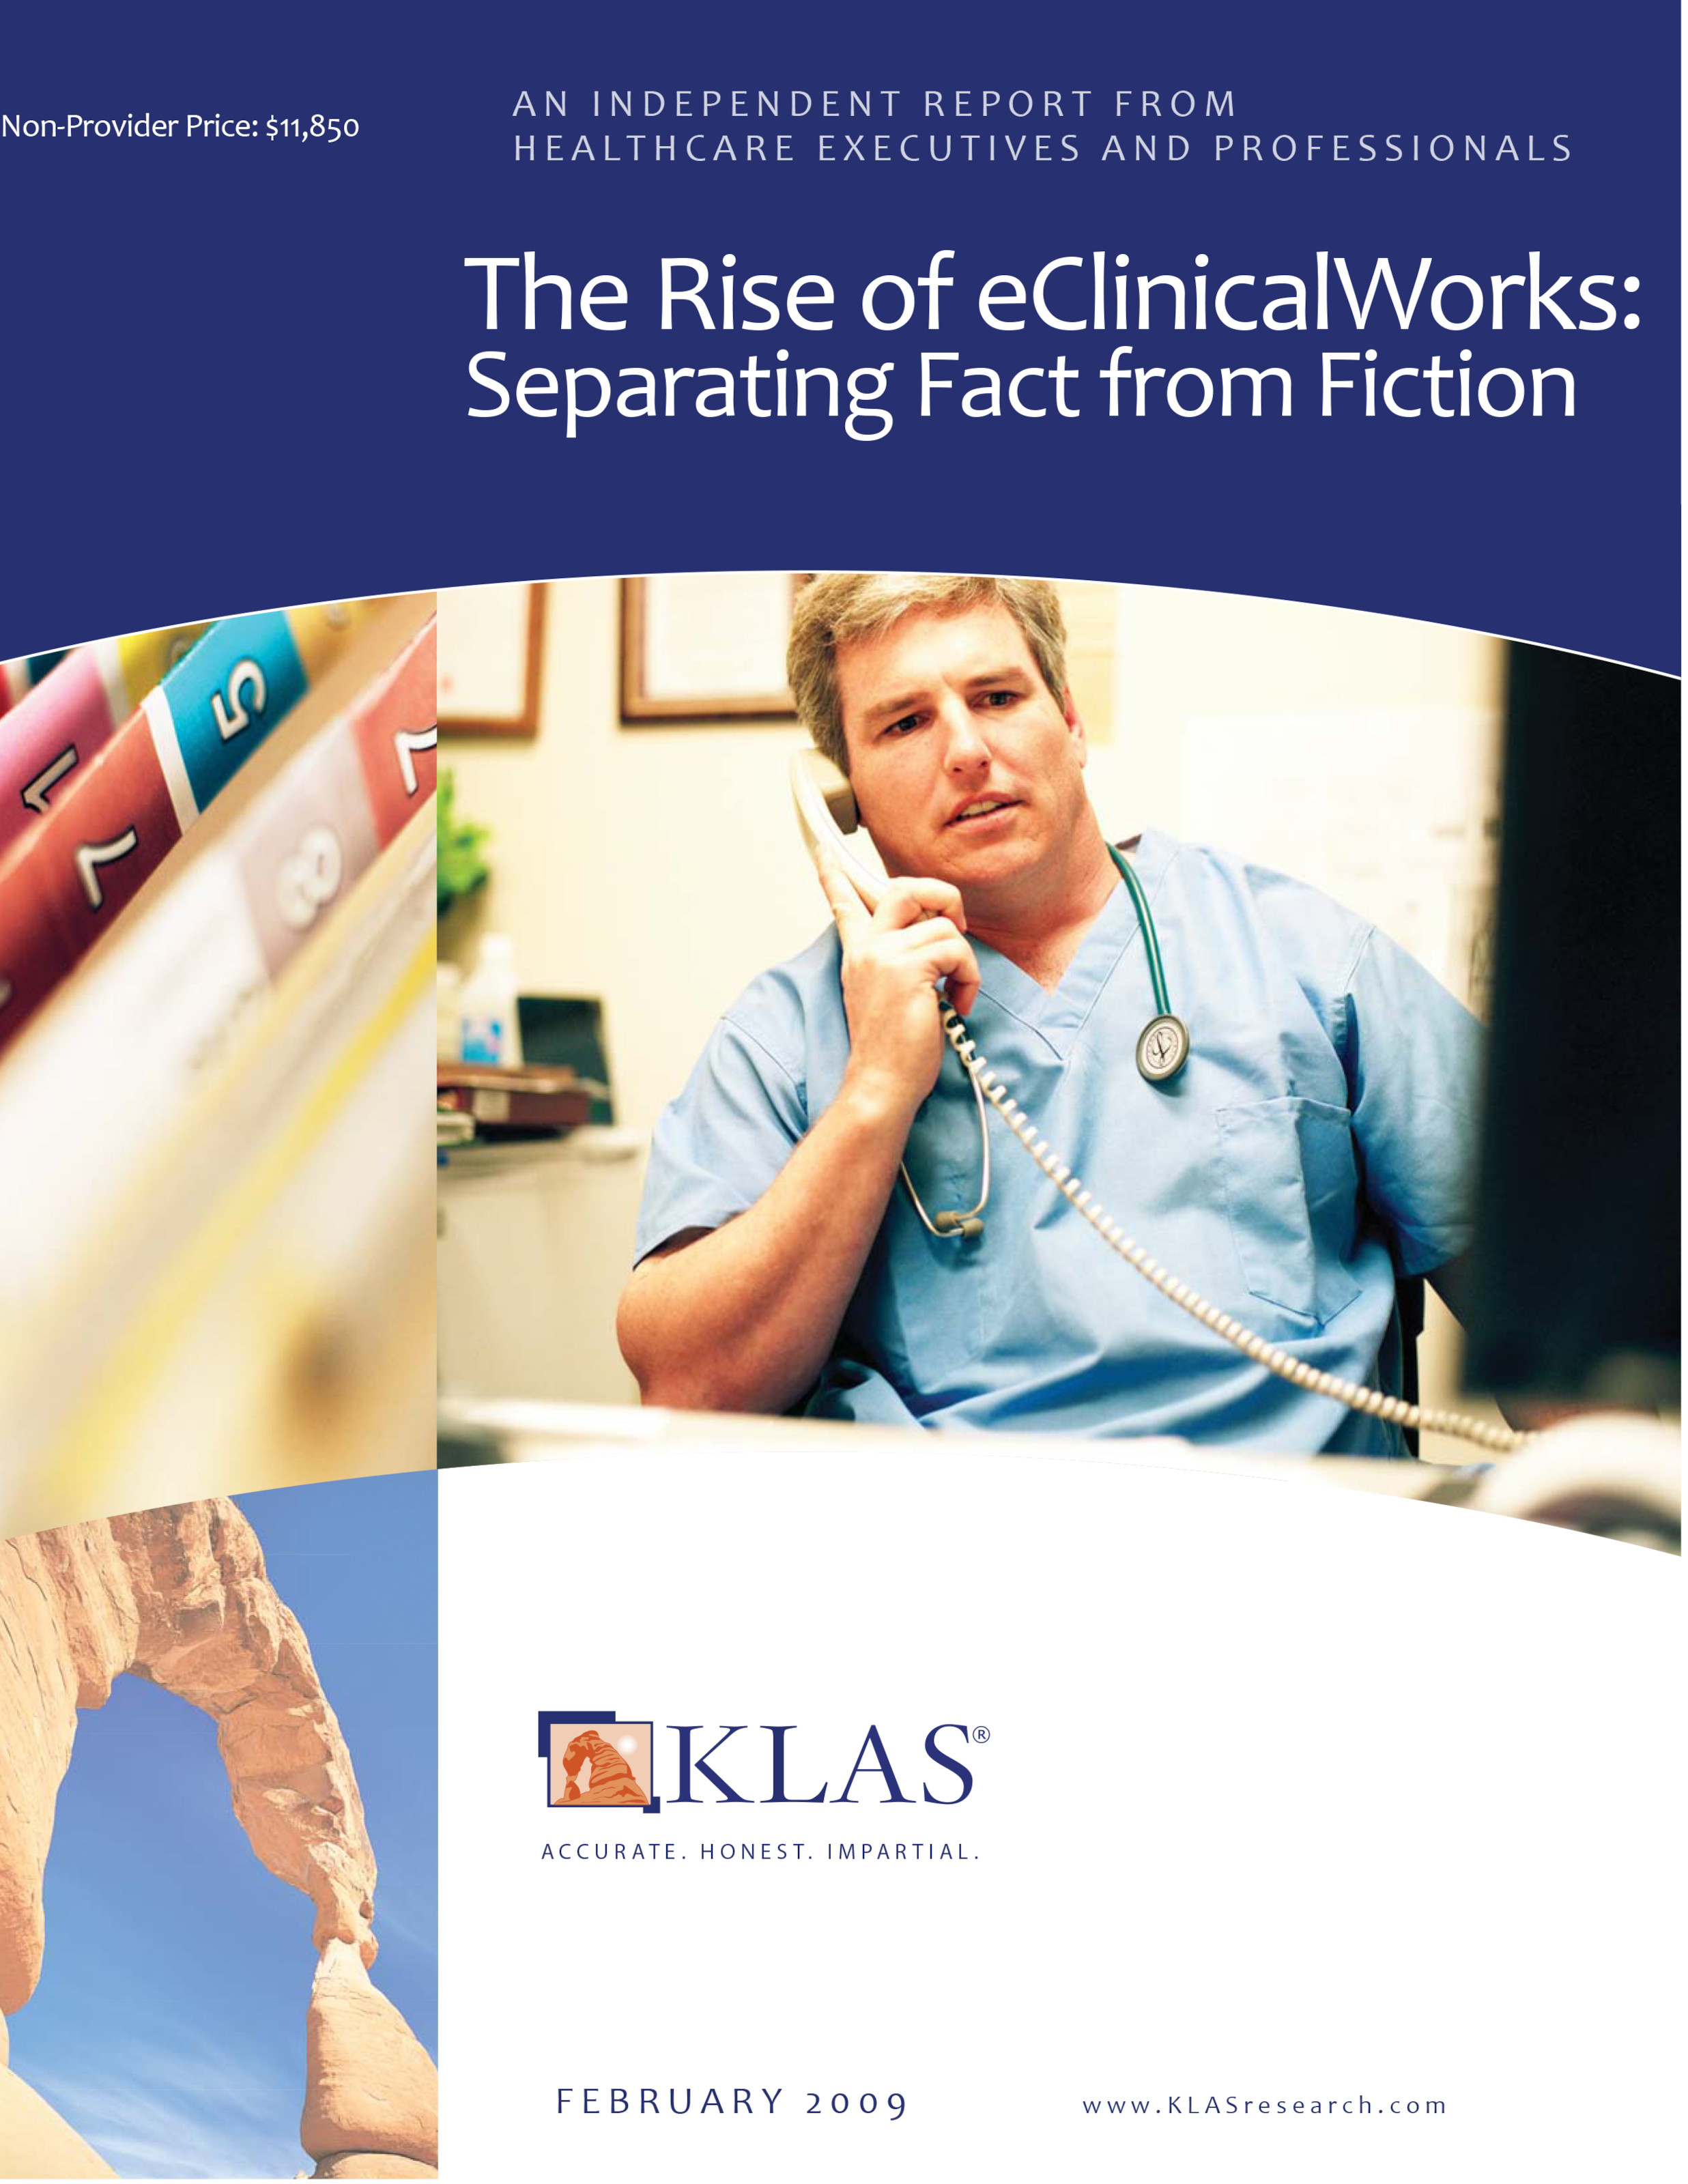 The Rise of eClinicalWorks